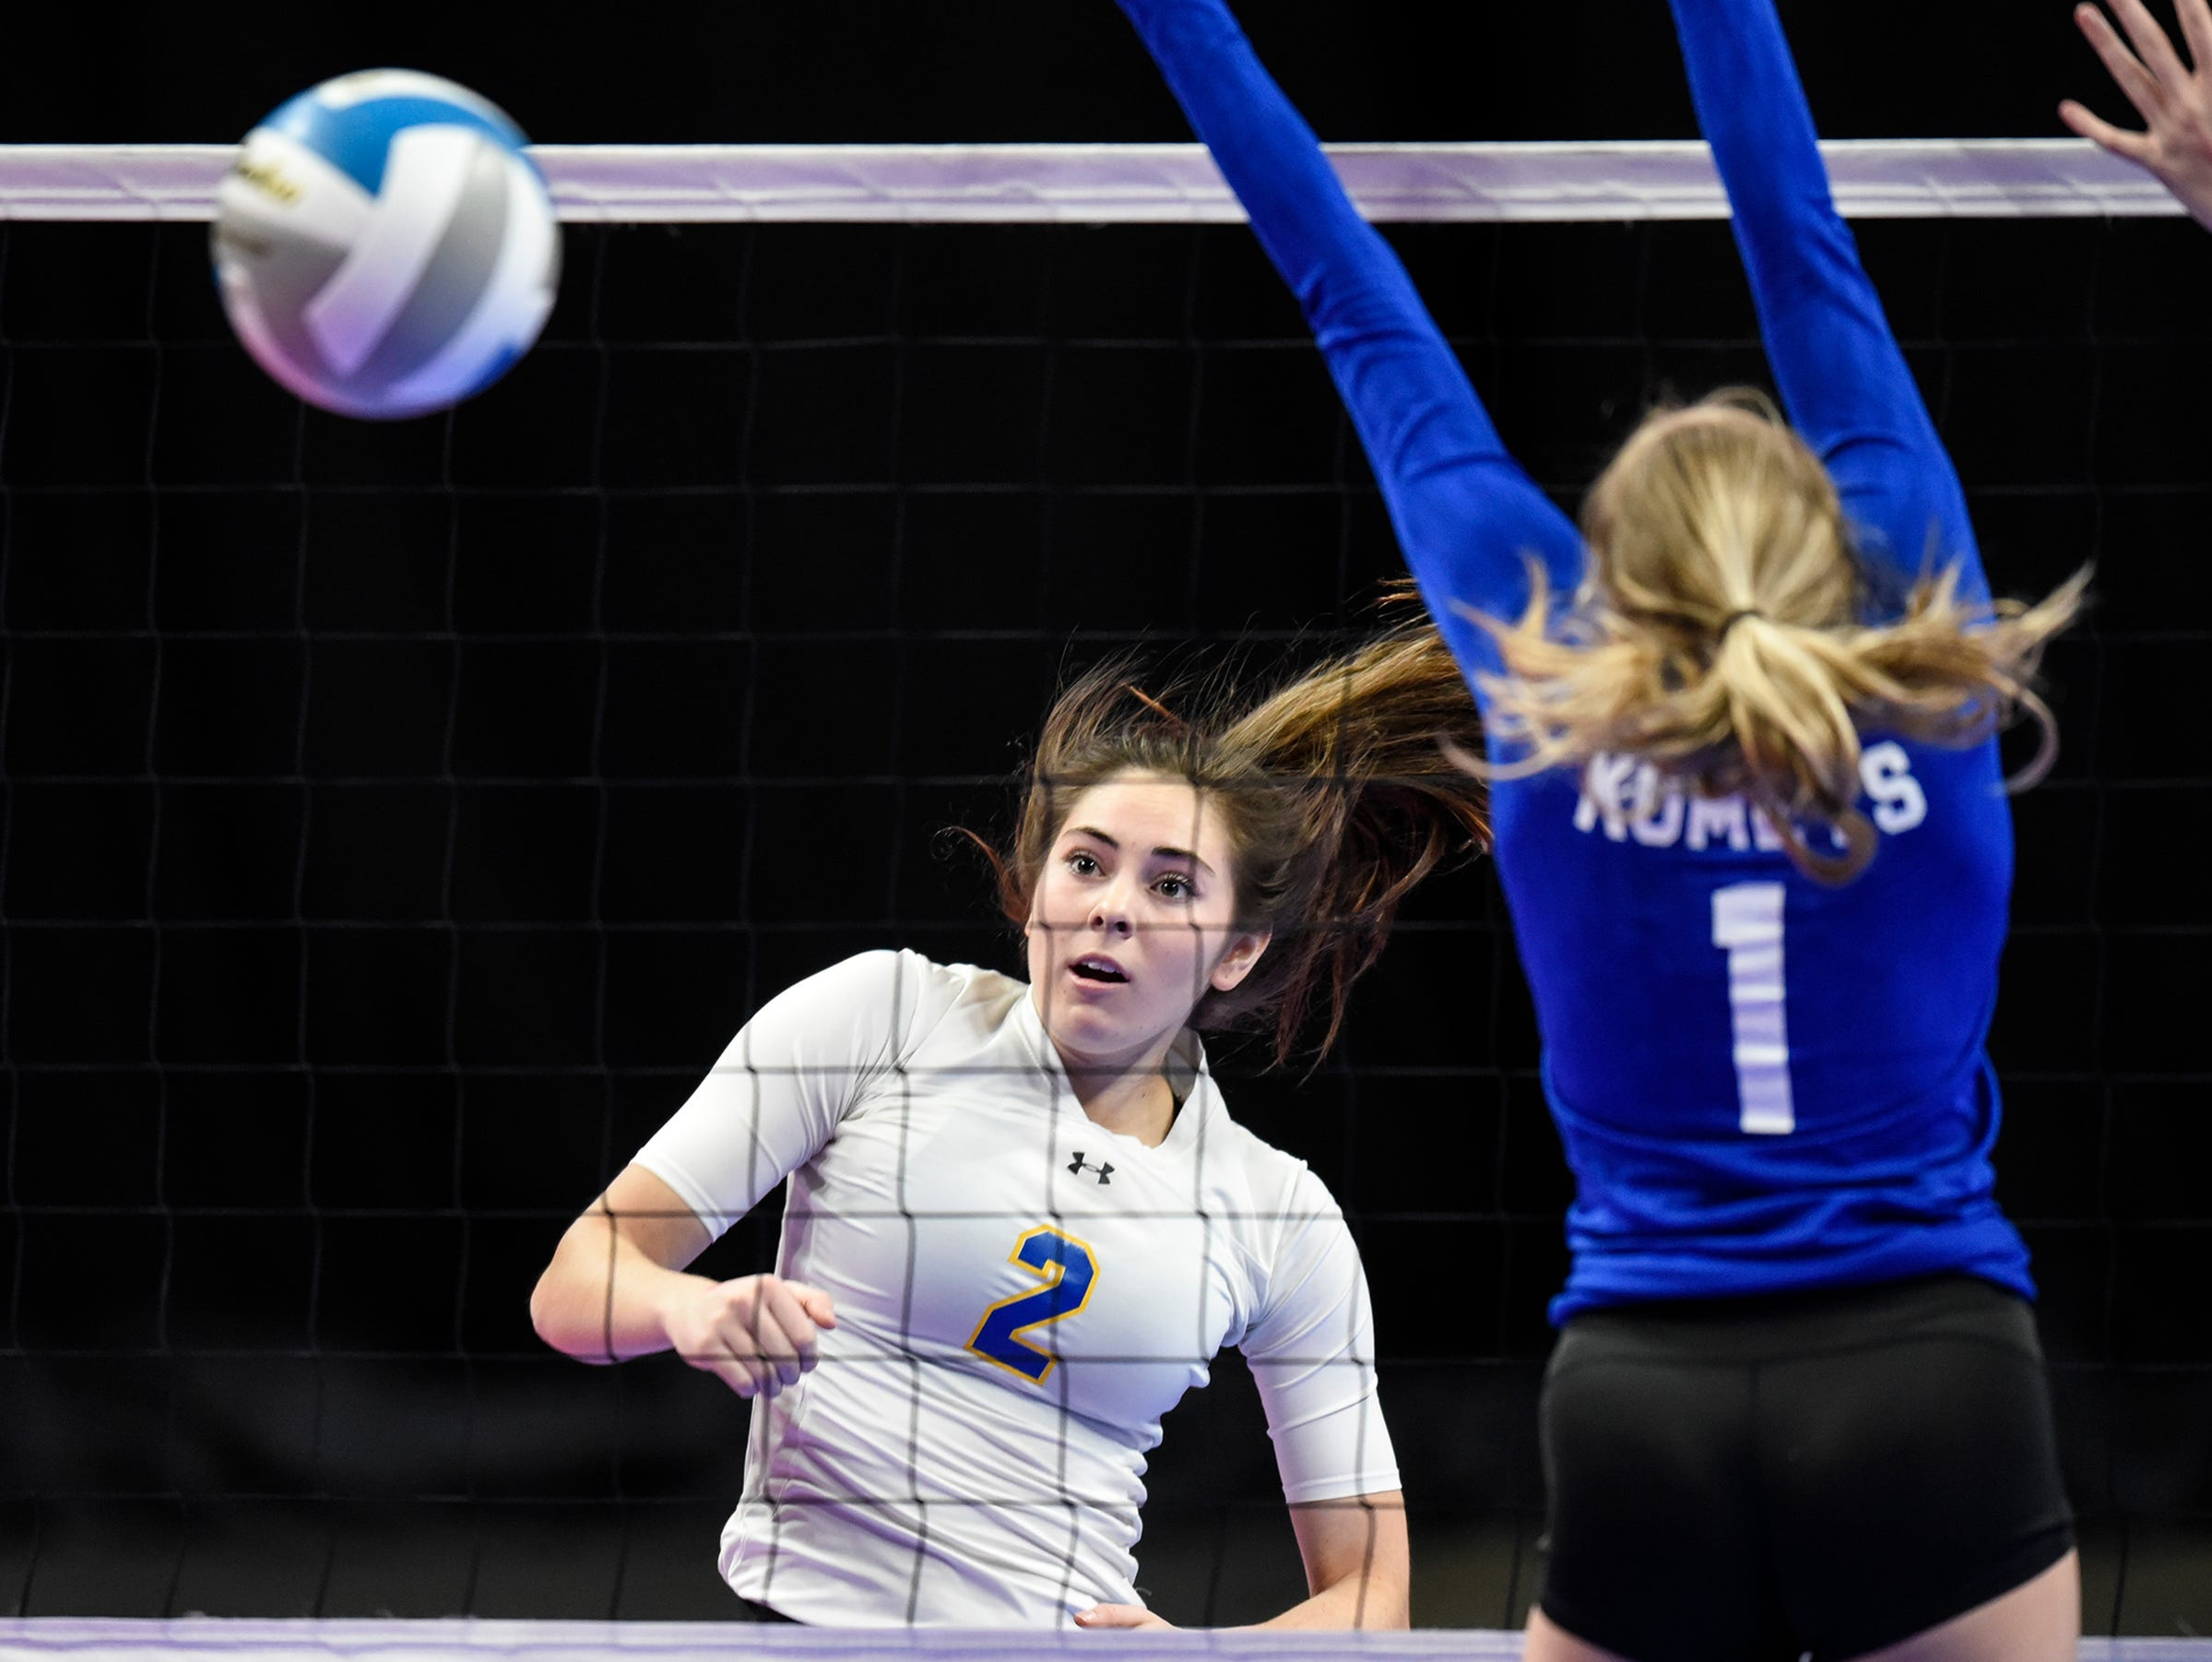 Cathedral's Lucy Pelzel scores a point during the state Class 2A quarterfinals Thursday, Nov. 8, at the Xcel Energy Center in St. Paul.